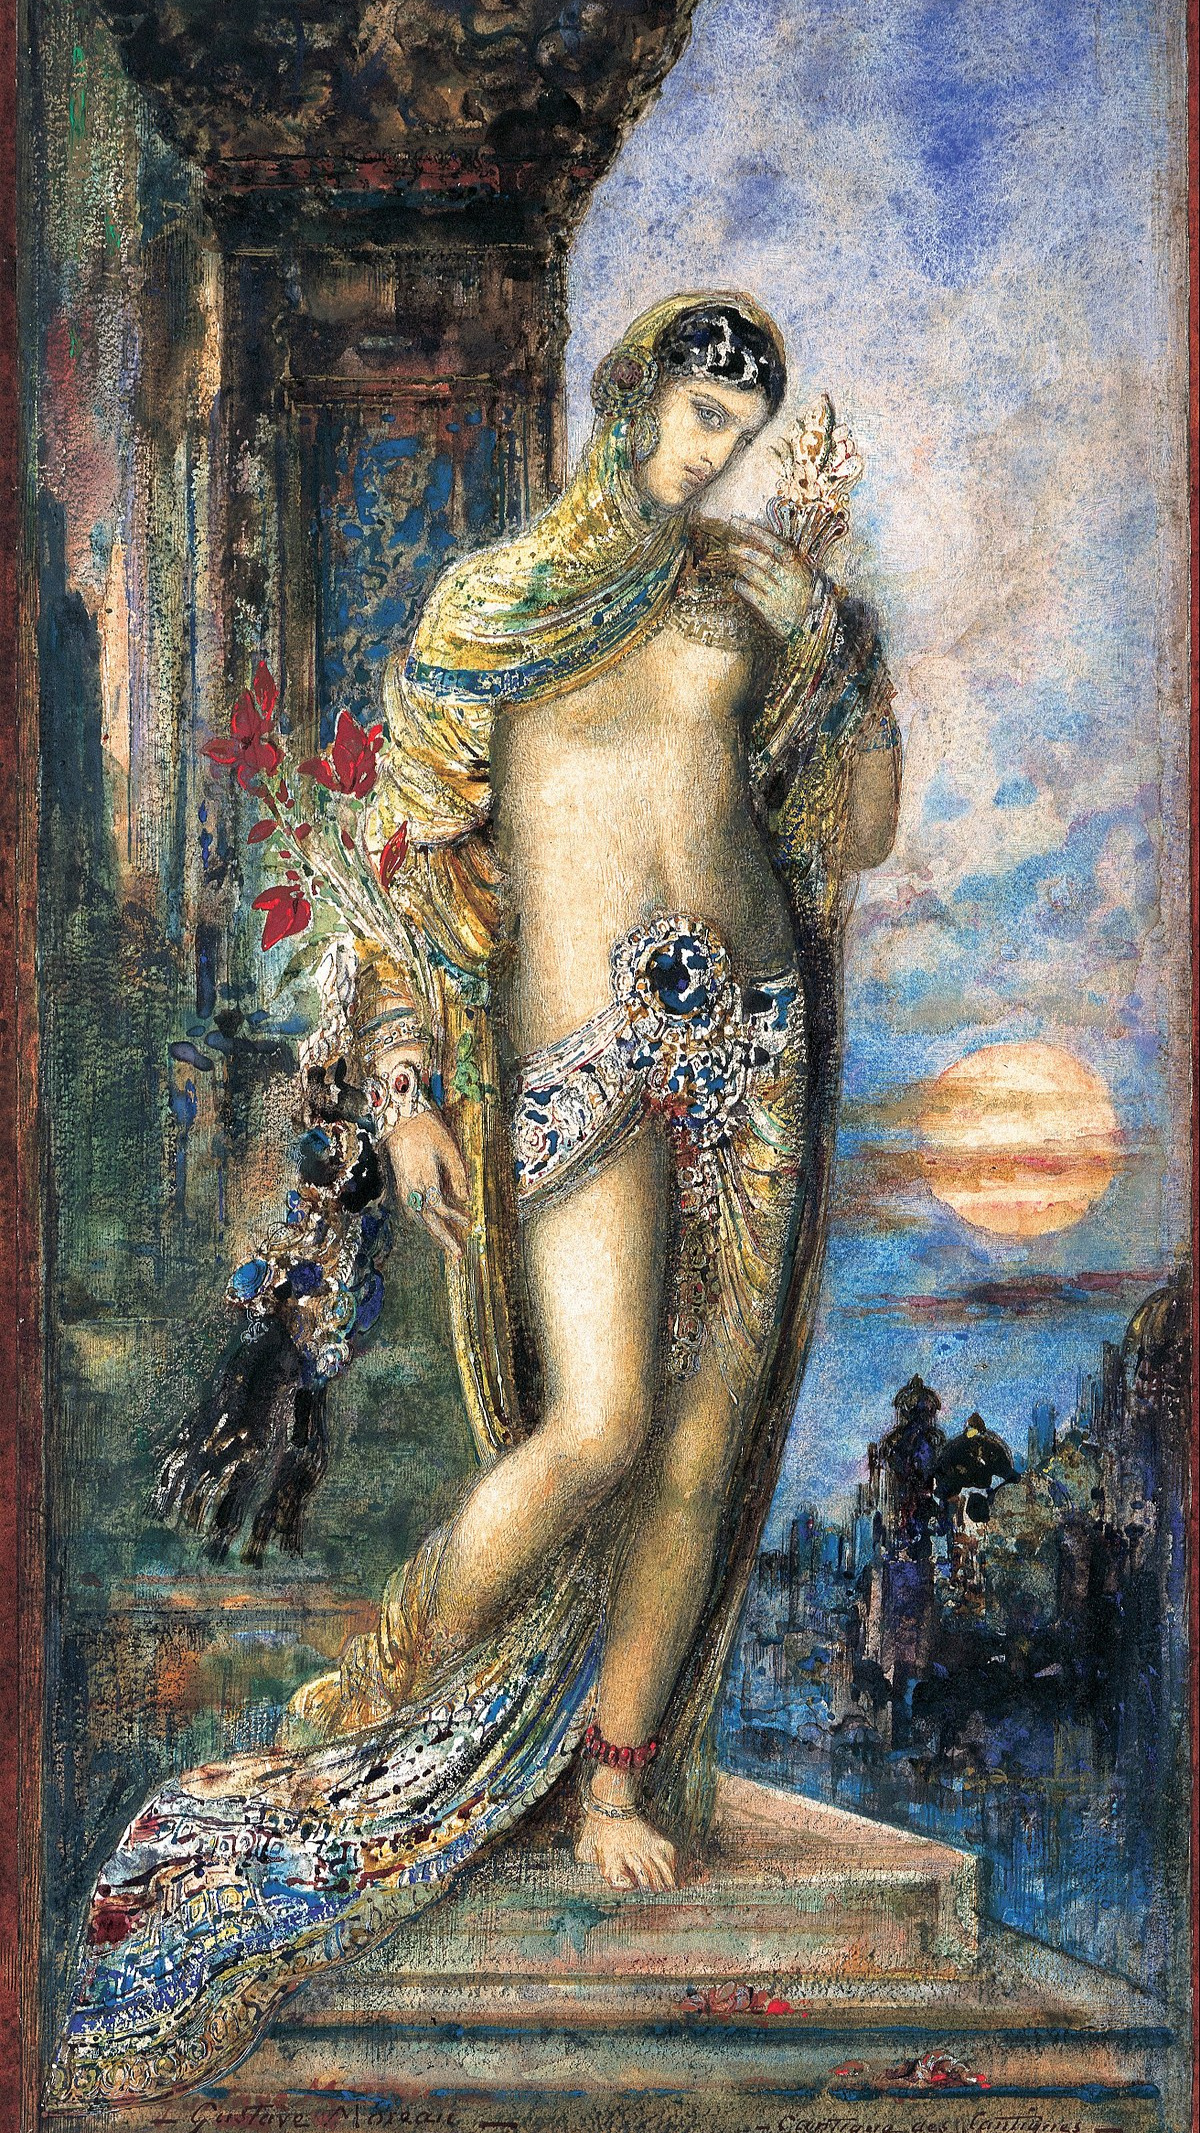 1200px-Gustave_Moreau_-_Song_of_Songs_%28Cantique_des_Cantiques%29_-_Google_Art_Project.jpg